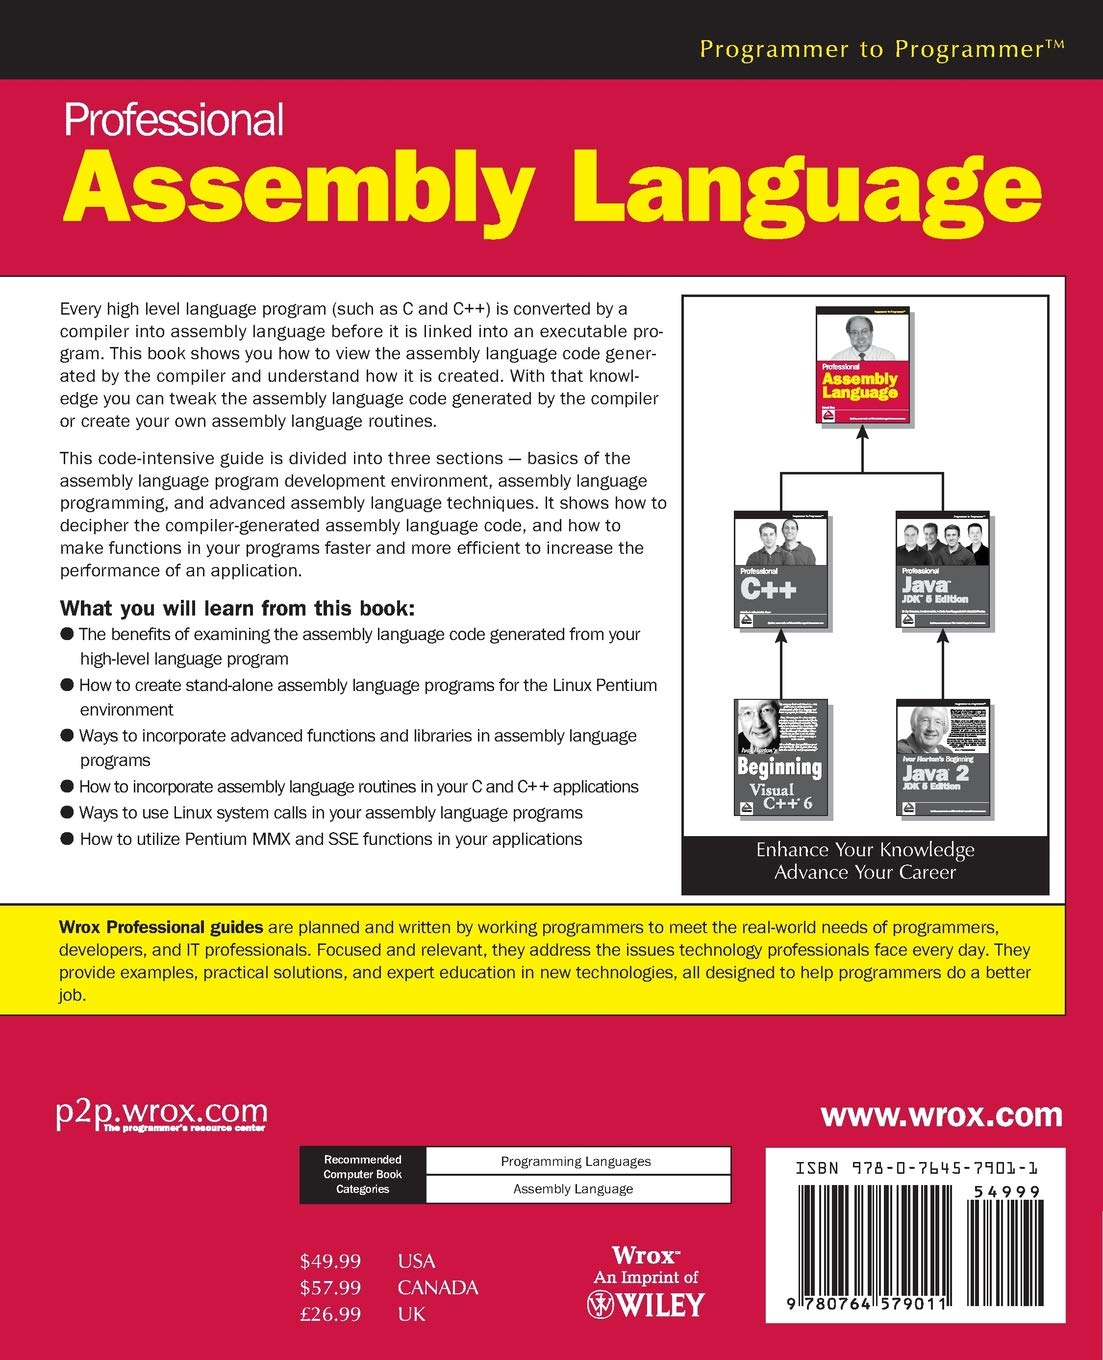 Buy Professional Assembly Language (Programmer to Programmer